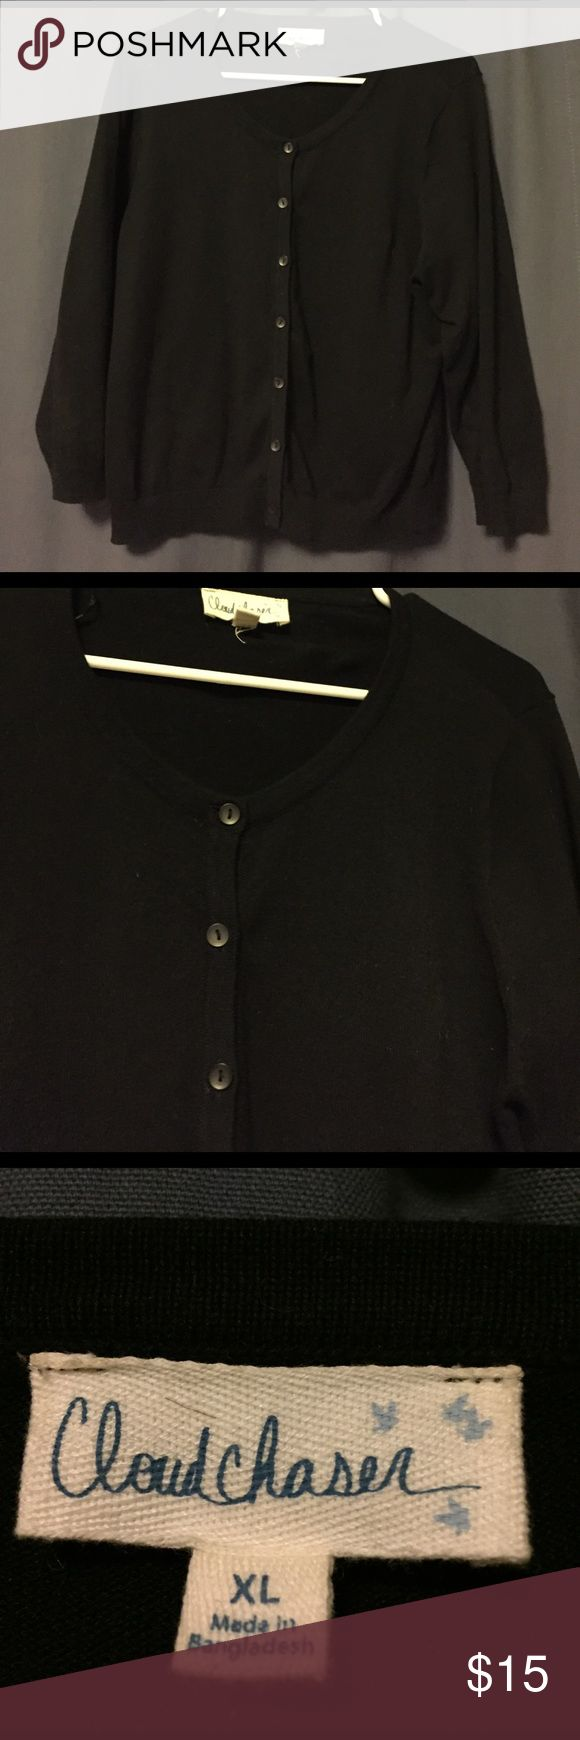 Black 3/4 length sleeve junior cardigan w/ buttons Brand new never worn juniors cardigan (also should  fit medium/large women) I'm a small/medium and it's too big for me. cloud chaser Sweaters Cardigans